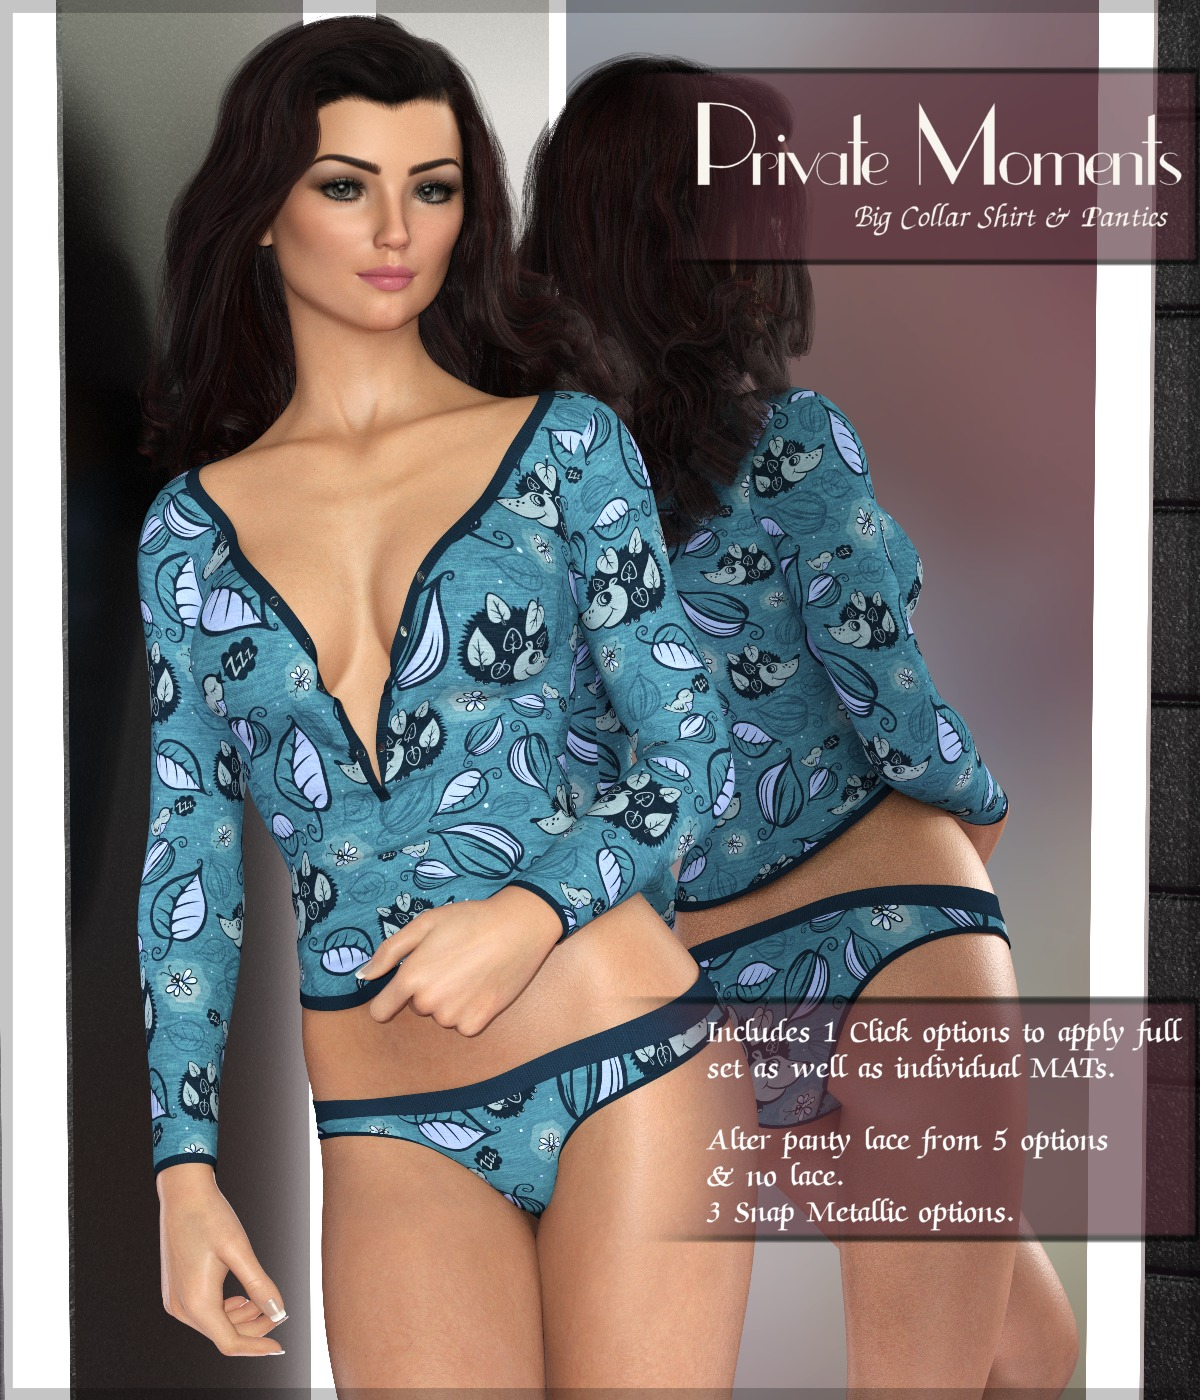 Private Moments: Big Collar Shirt - G8F